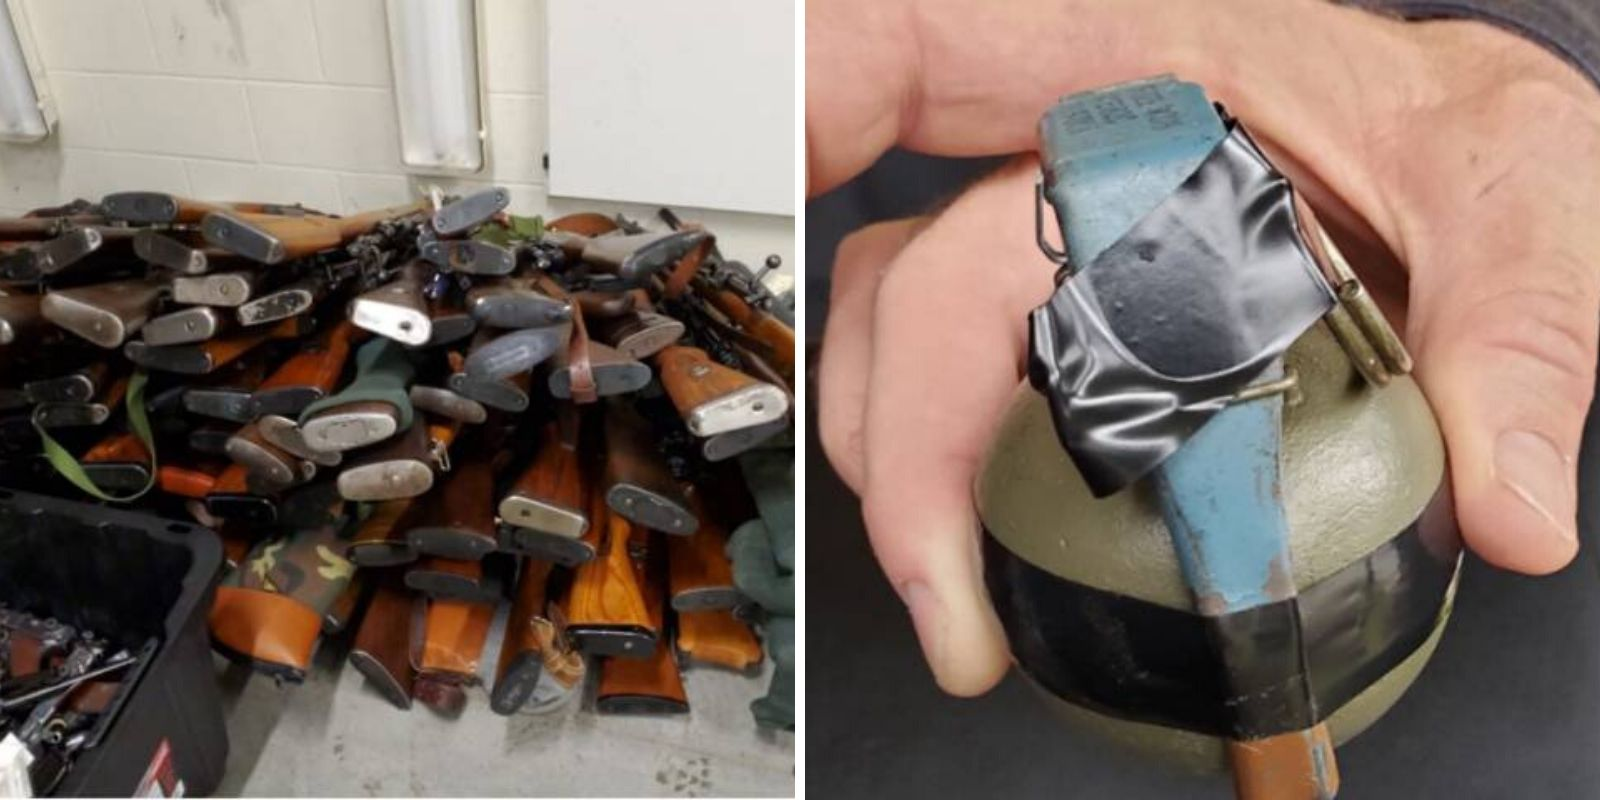 One grenade, 250 guns, and 200K rounds of ammo seized from Kitchener home on Halloween